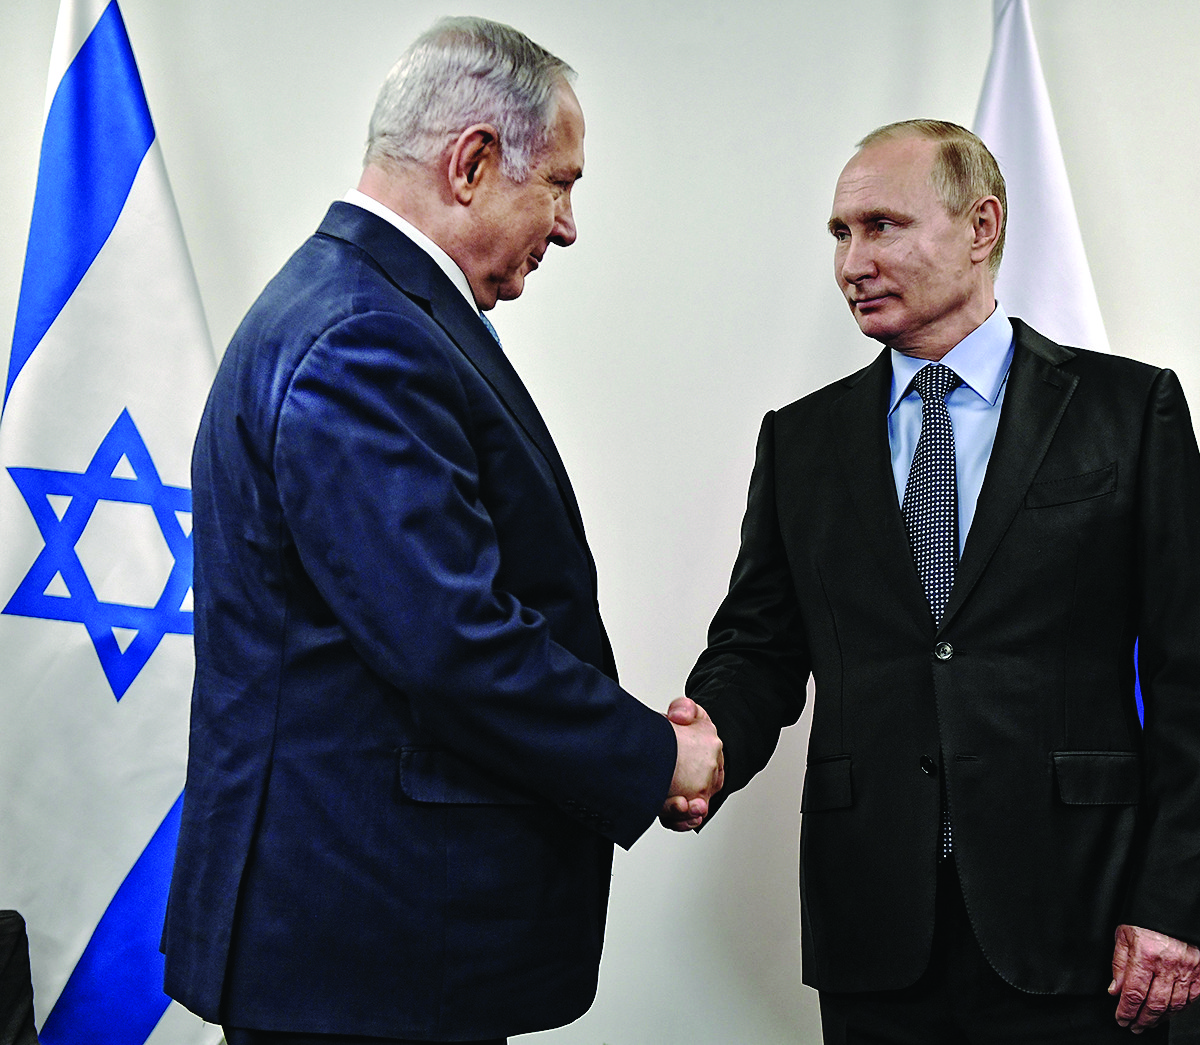 Russian President Vladimir Putin, right, greets Israeli Prime Minister Benjamin Netanyahu at the Jewish Museum and Tolerance Center in Moscow, Jan. 29, 2018.